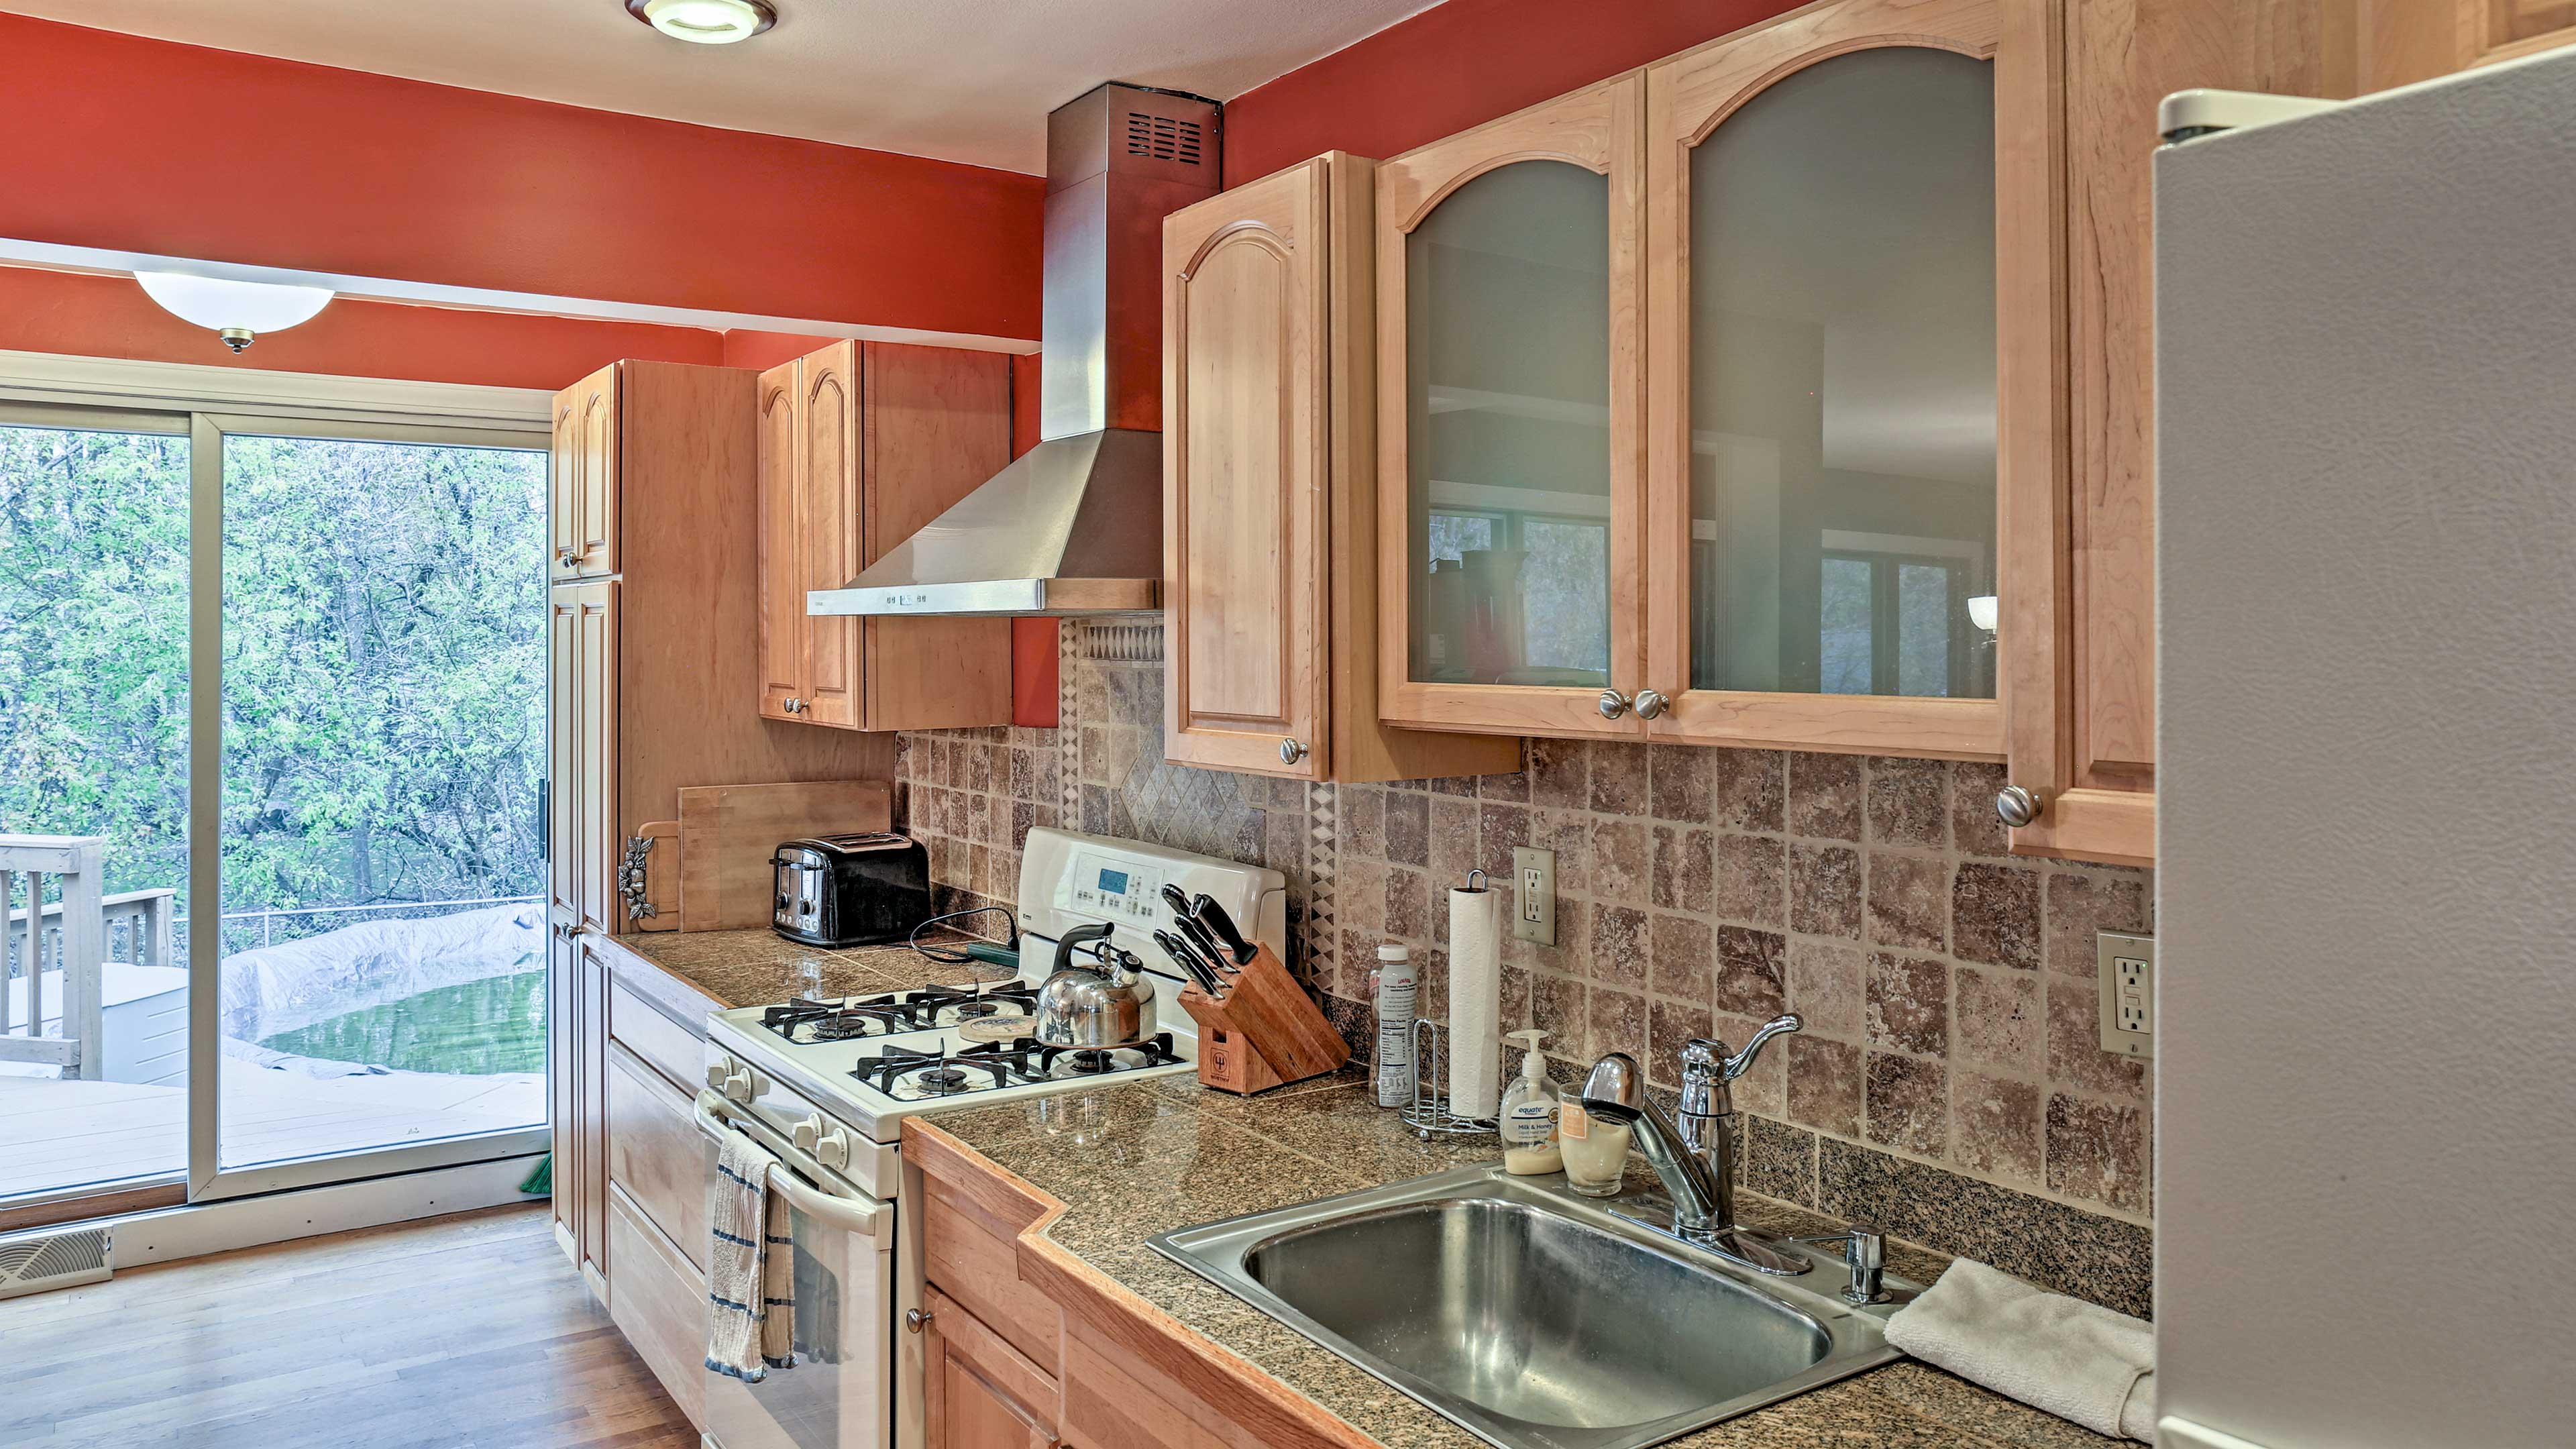 The granite countertops and tile backsplash of the kitchen provide a nice touch!